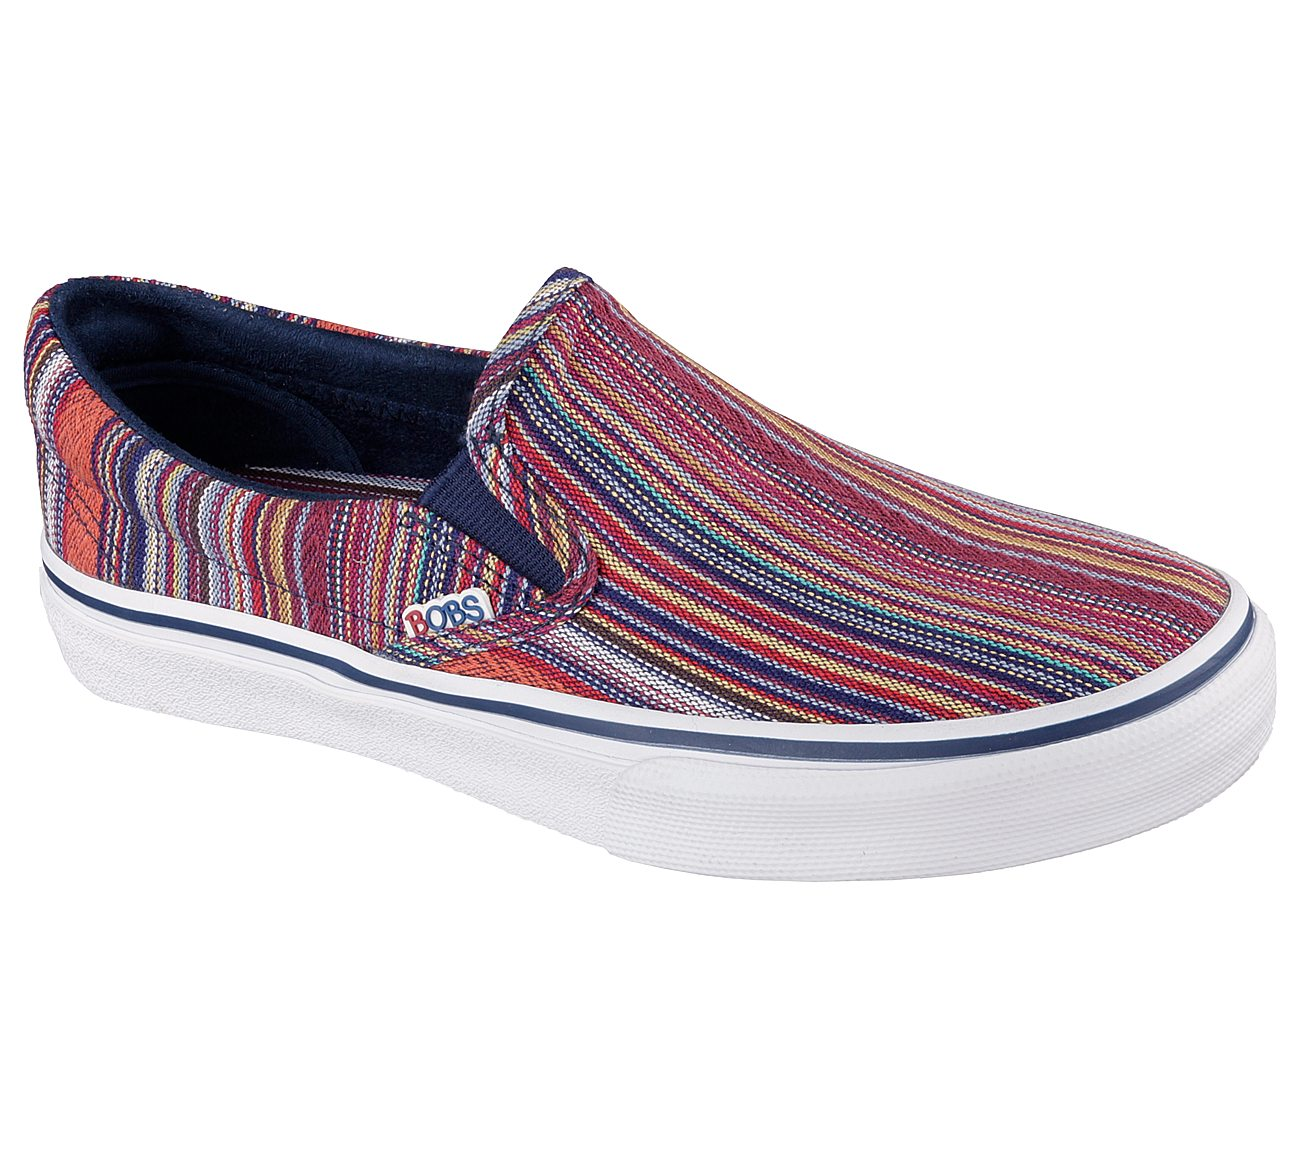 d7e8469ee3c4 Buy SKECHERS Bobs The Menace - Sand Dune Slip-On Sneakers Shoes only ...